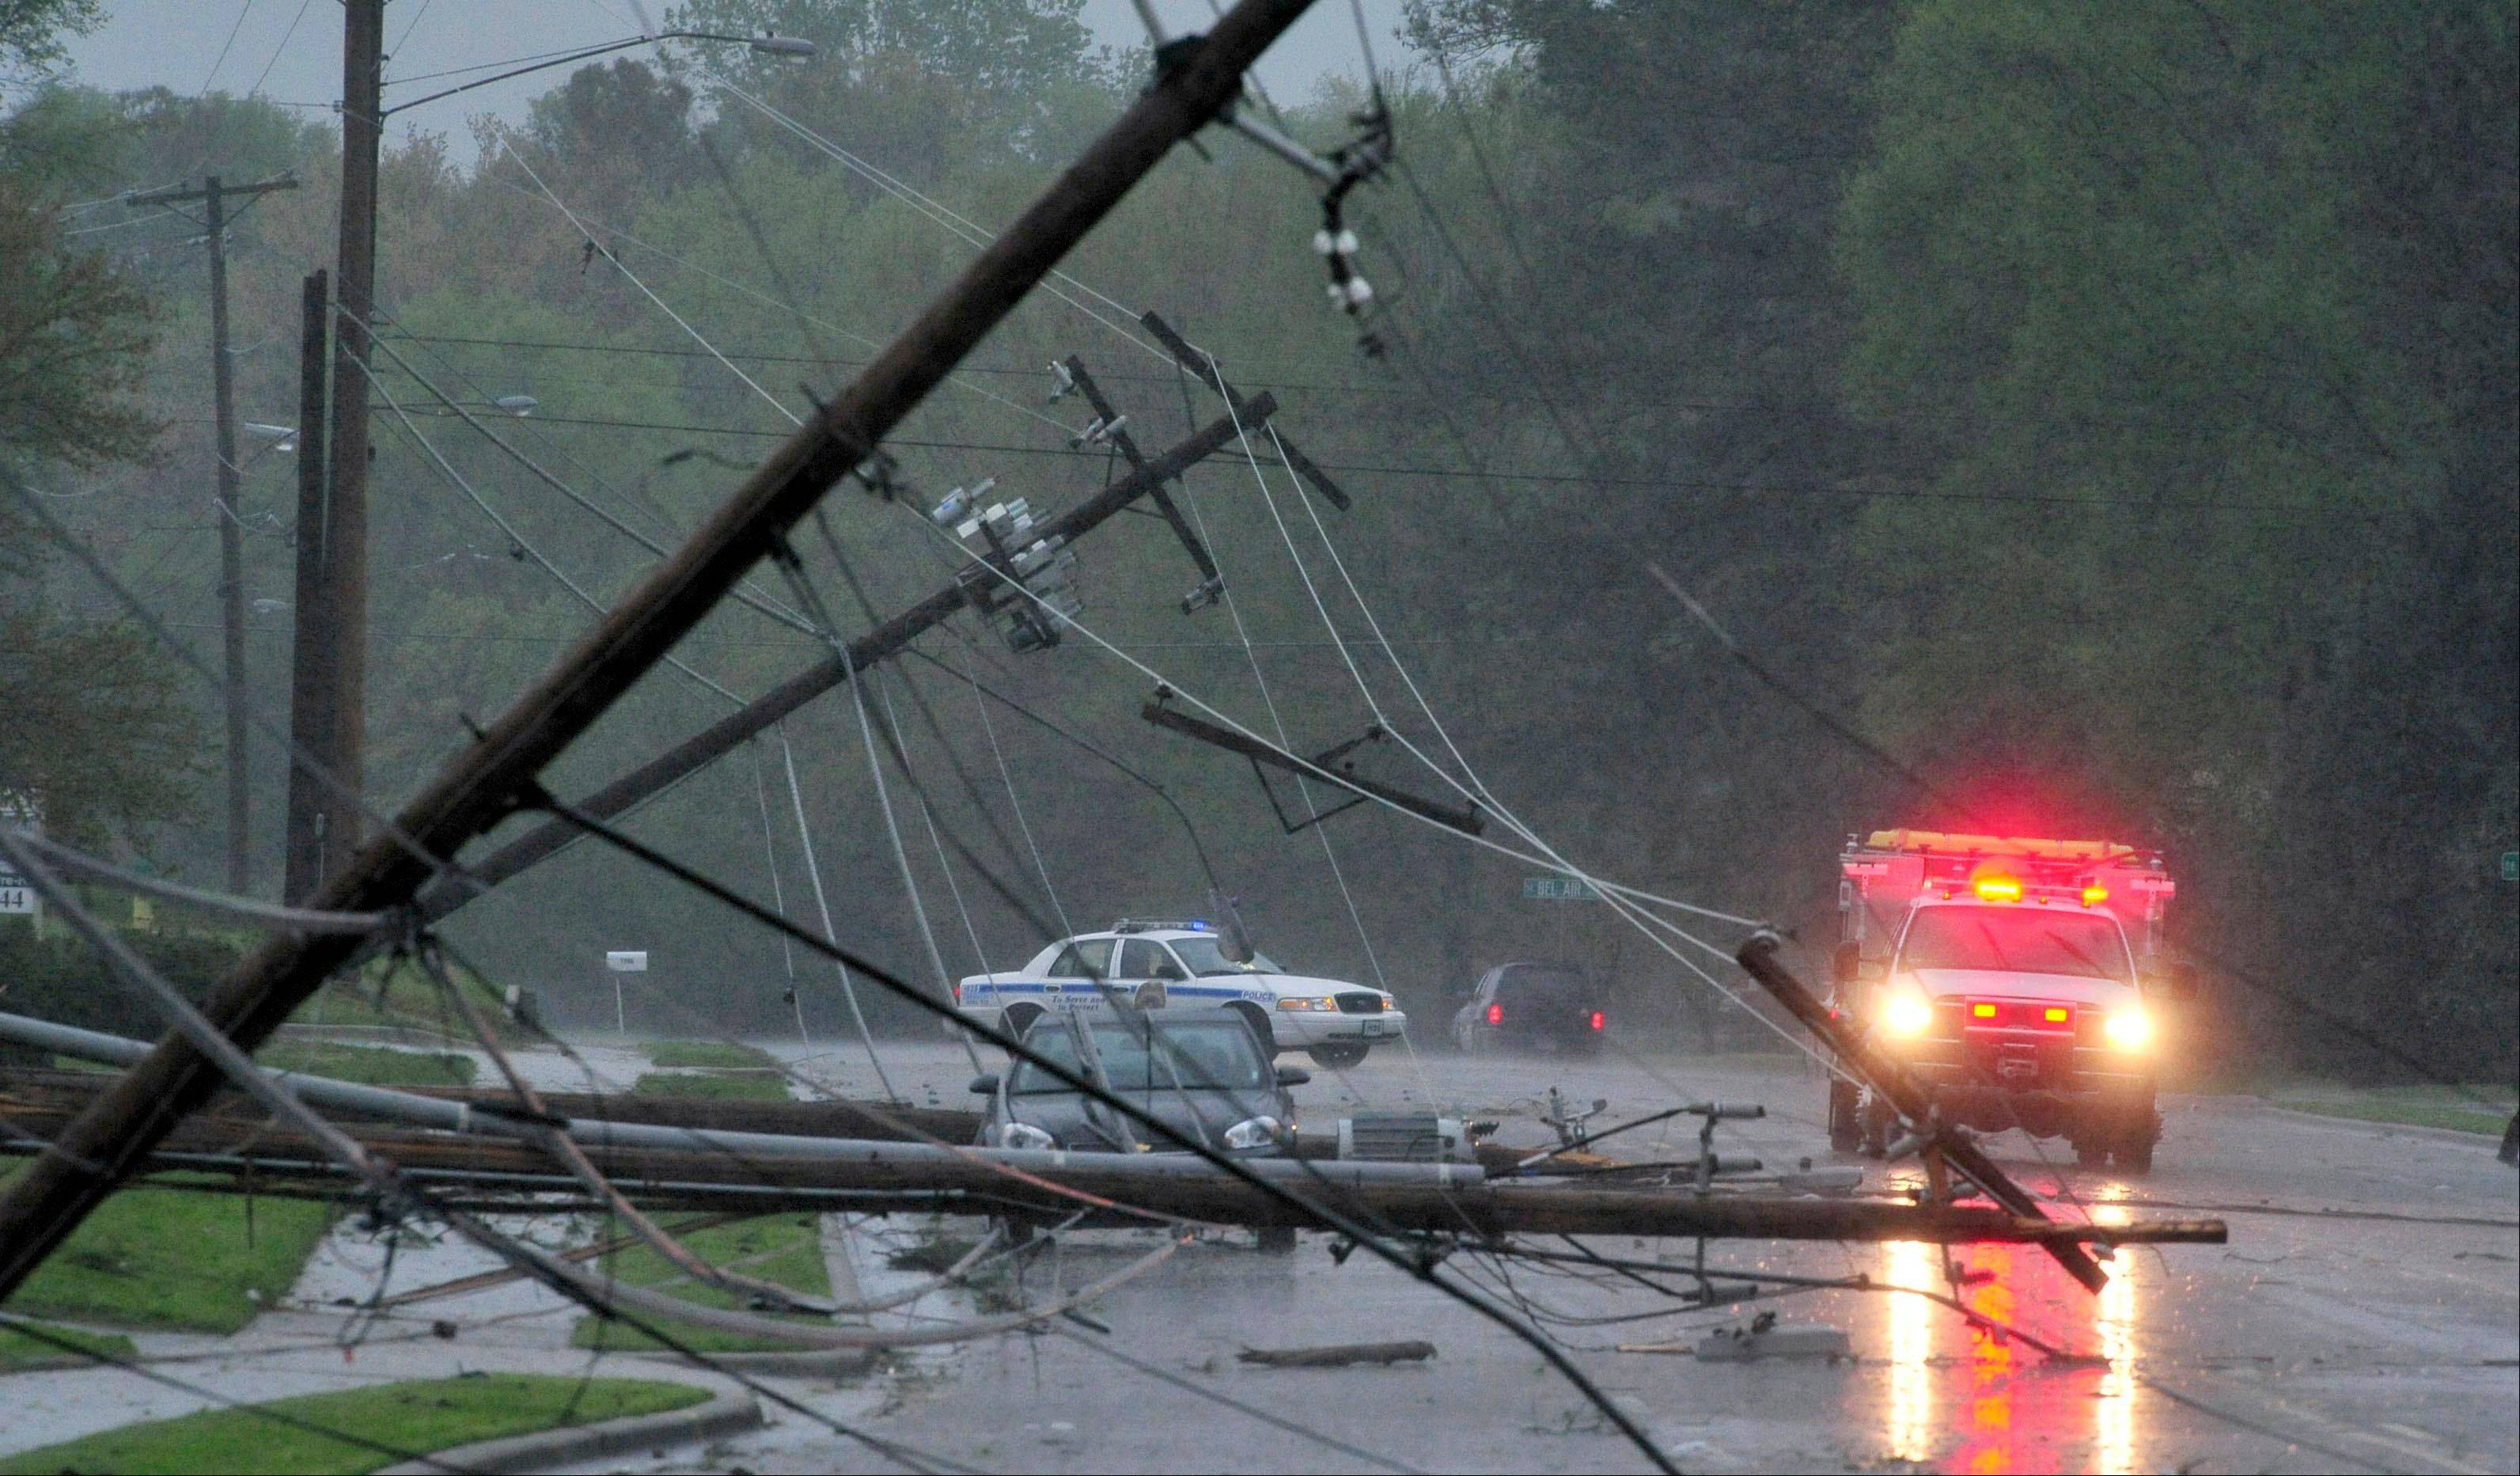 A car is trapped under power lines on Whitesburg Drive as strong storms swept through Huntsville, Ala. Thursday, April 11, 2013. A strong spring storm that socked the Midwest with ice and heavy, wet snow made its way east, raking the South with tornadoes Thursday, with three deaths blamed on the rough weather and thousands of people without power.